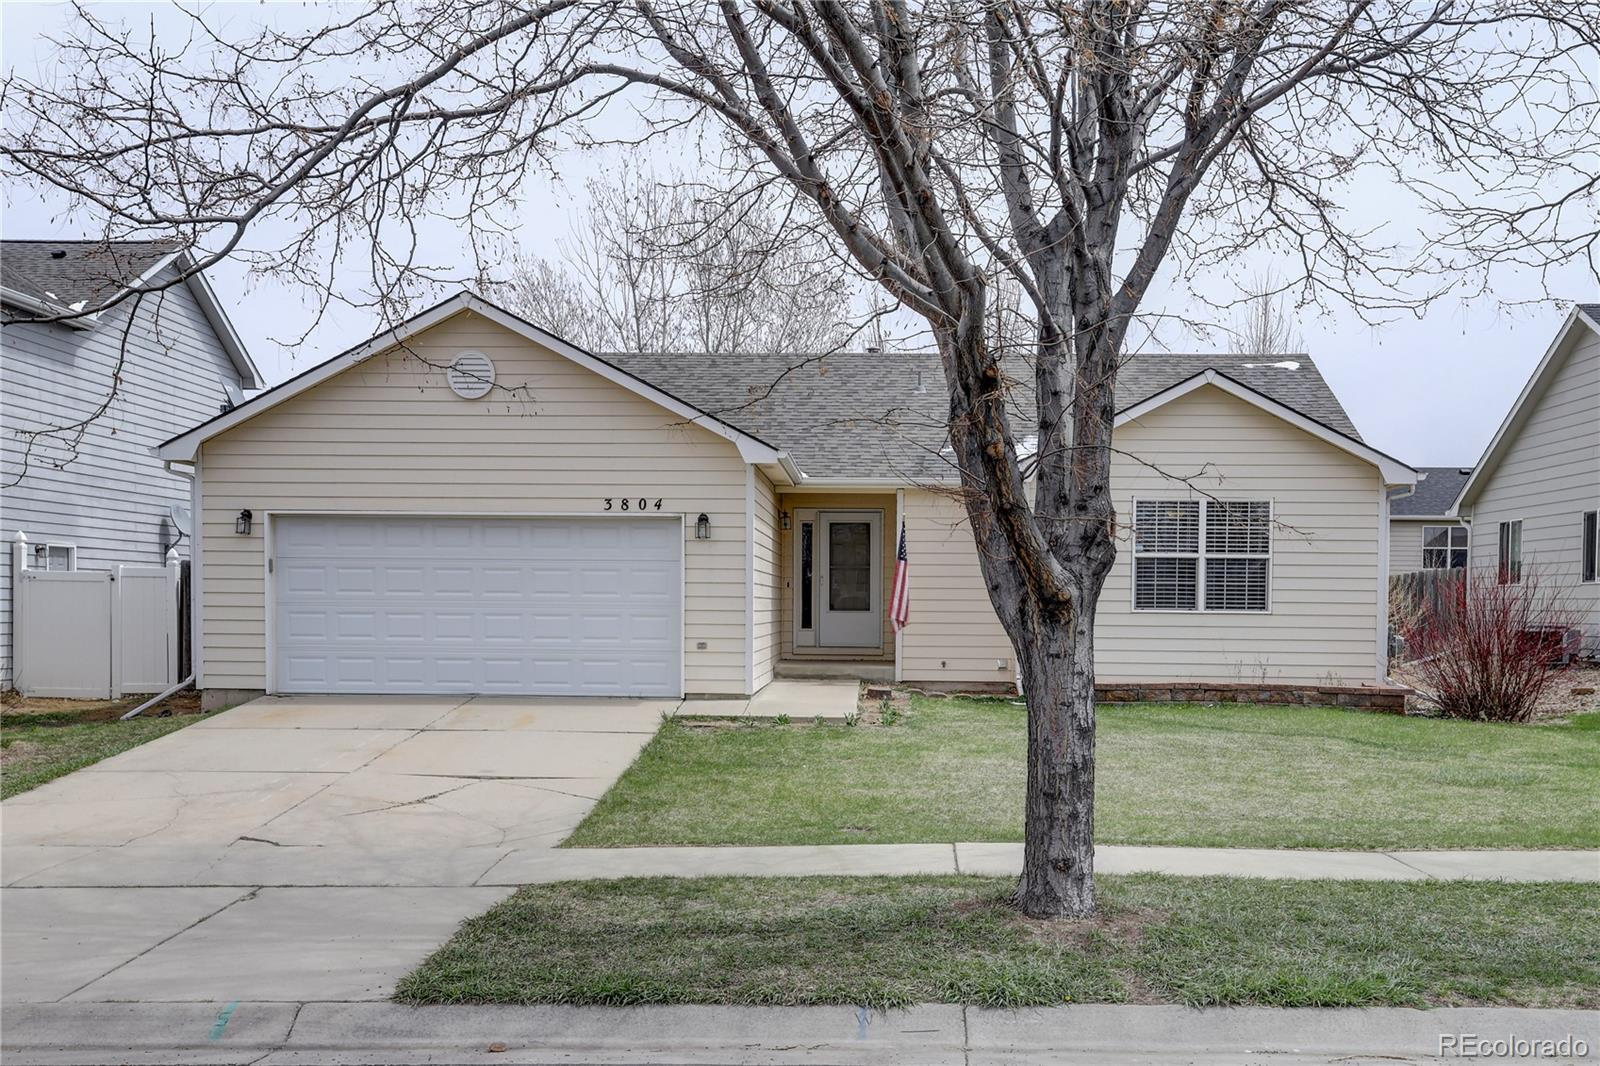 3804 Mountain View Drive, Evans, CO 80620 - Evans, CO real estate listing